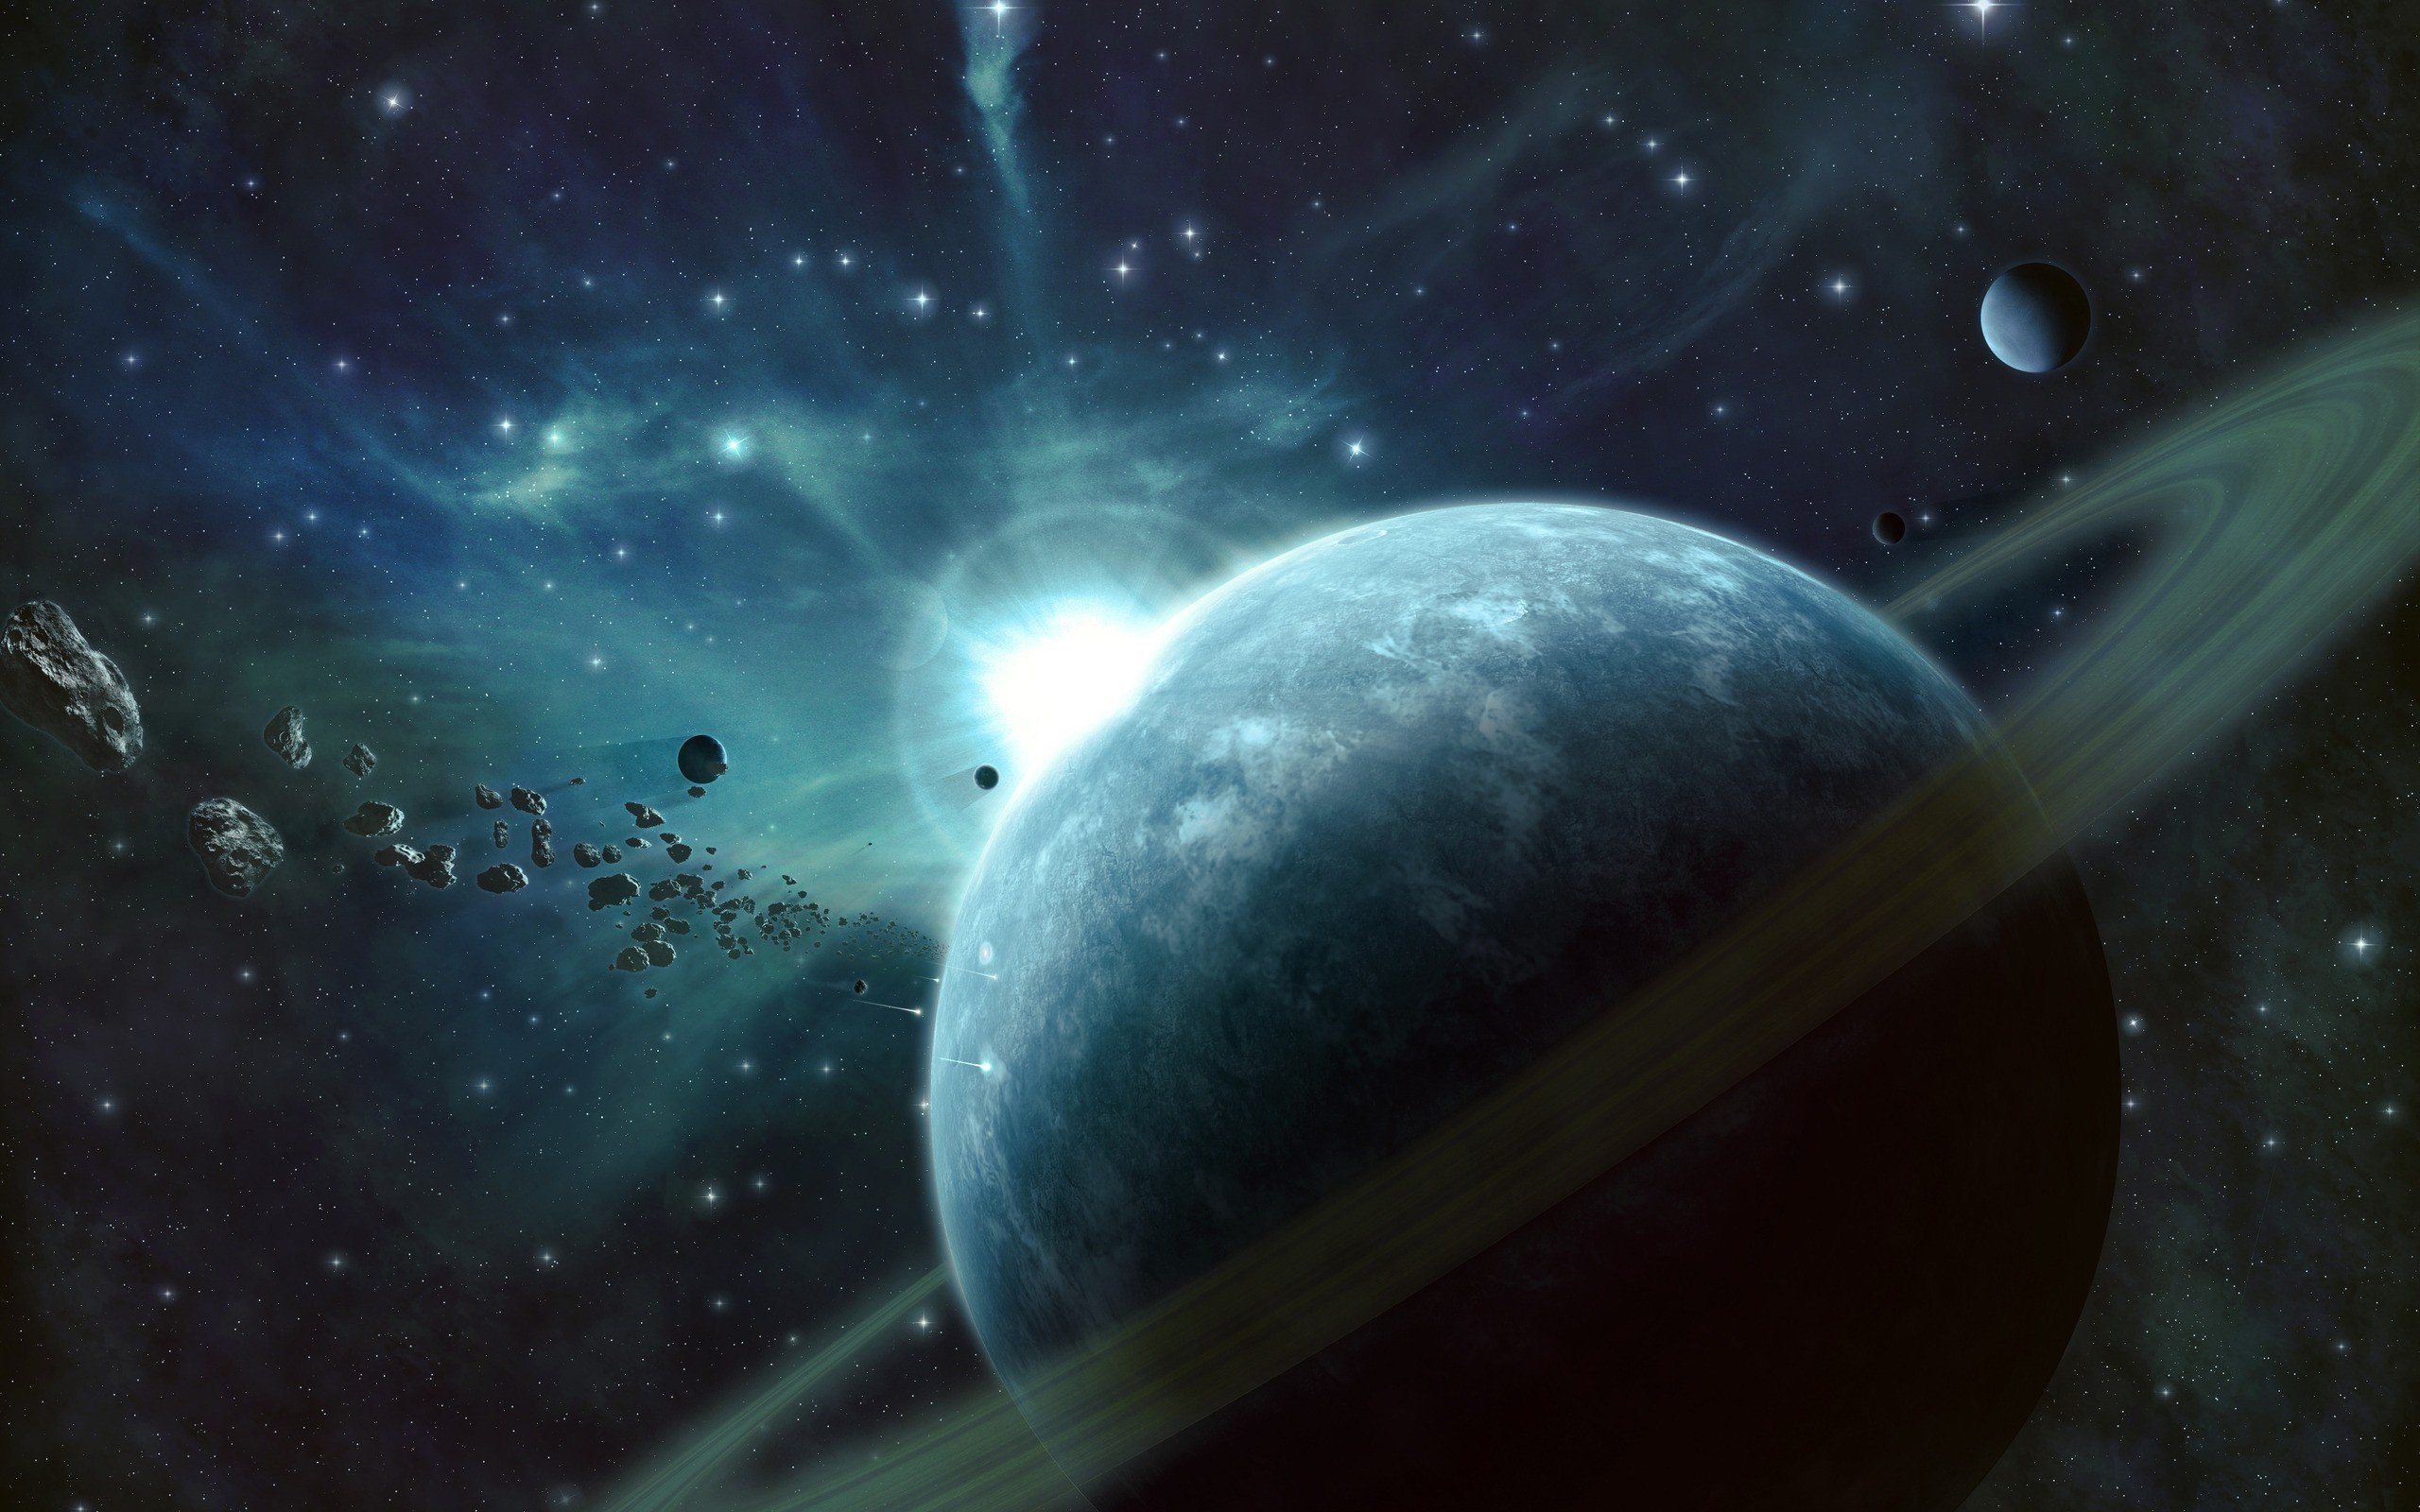 Outer space stars planets rings wallpaper | 2560x1600 ...